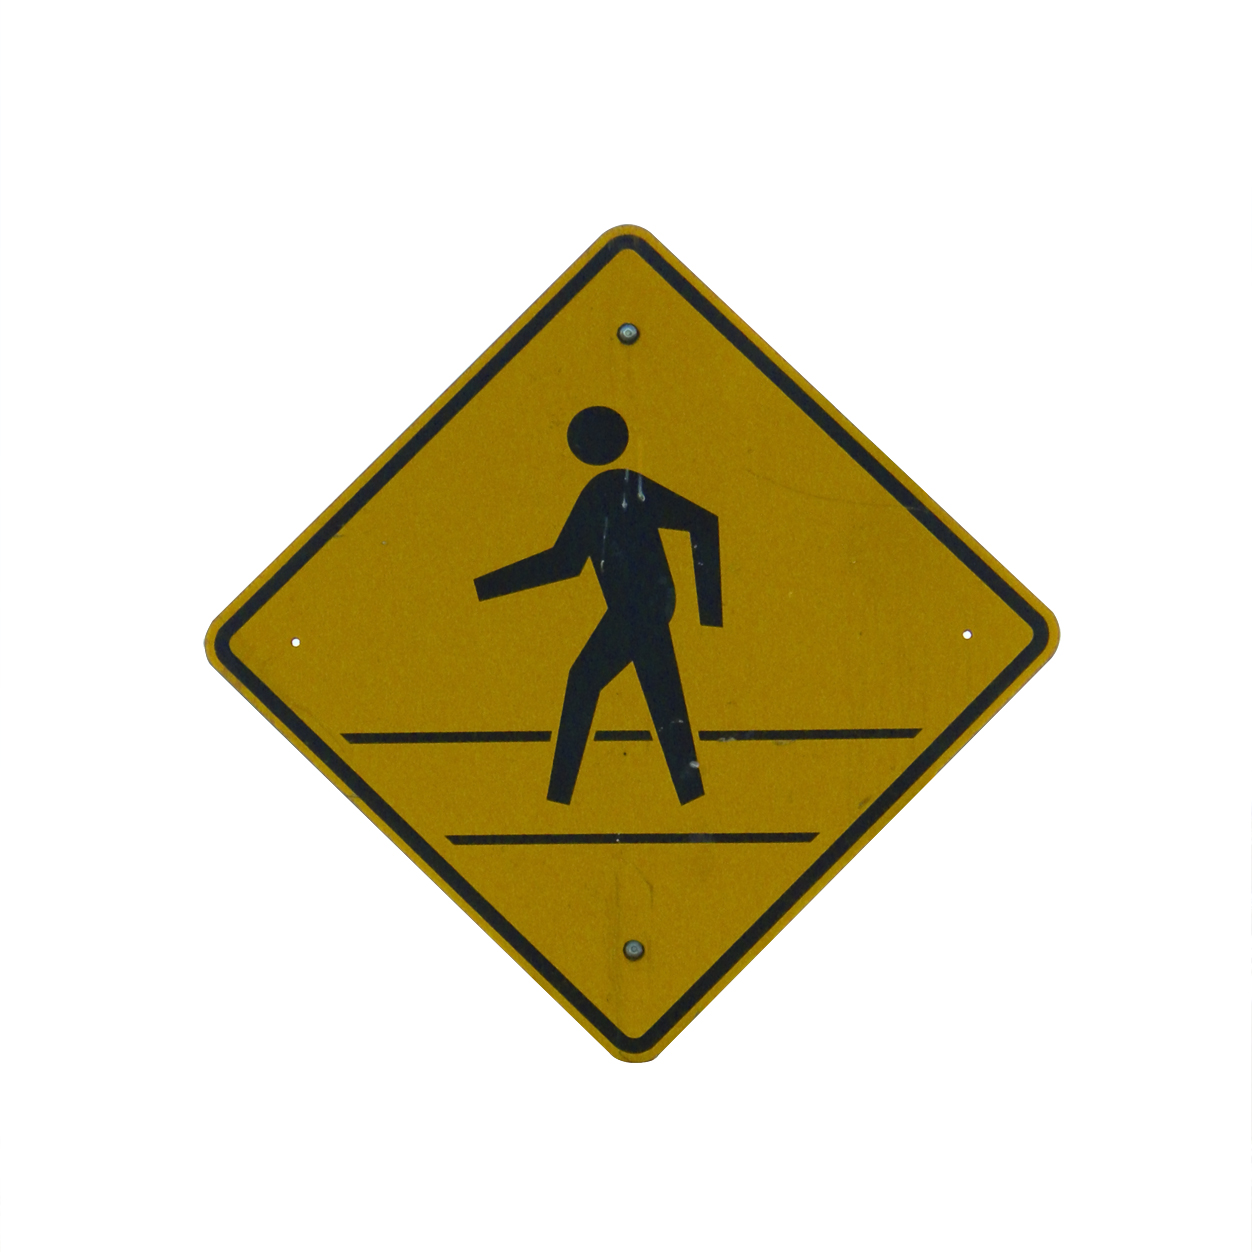 Fatal Pedestrian Accidents in Connecticut